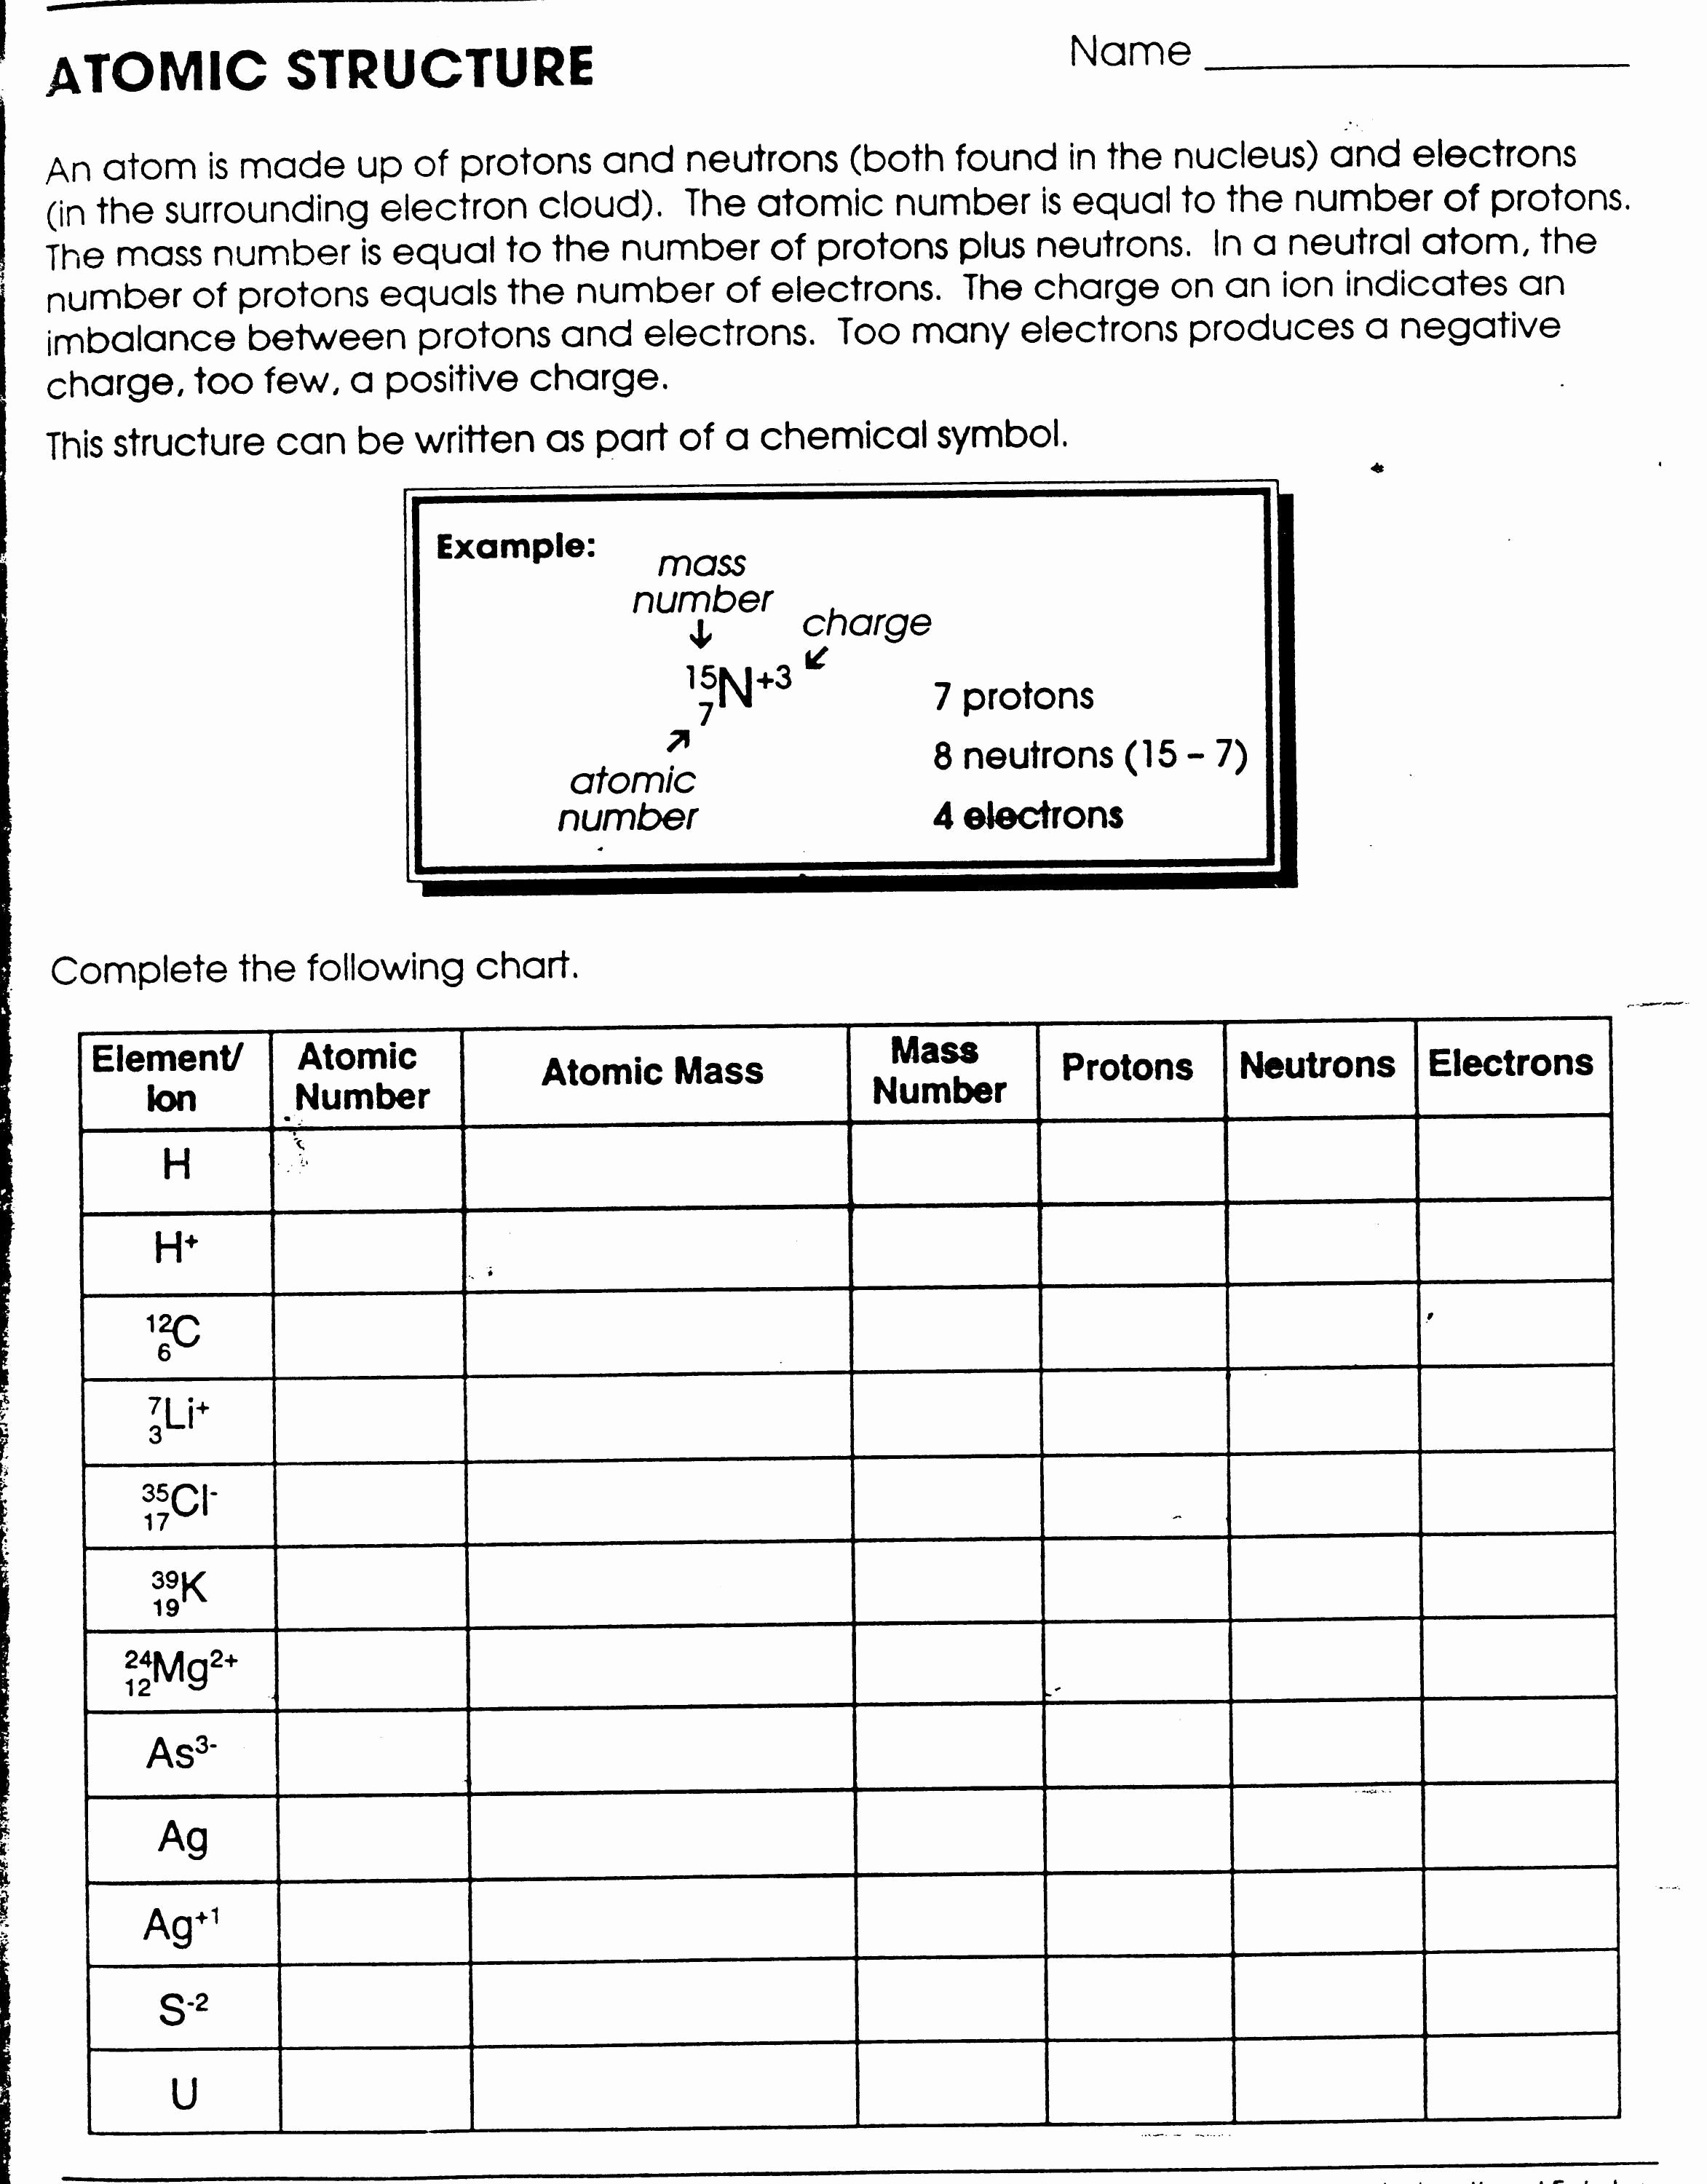 Atomic Structure Worksheet Answers Key Elegant Skills Worksheet Concept Review Section the Development